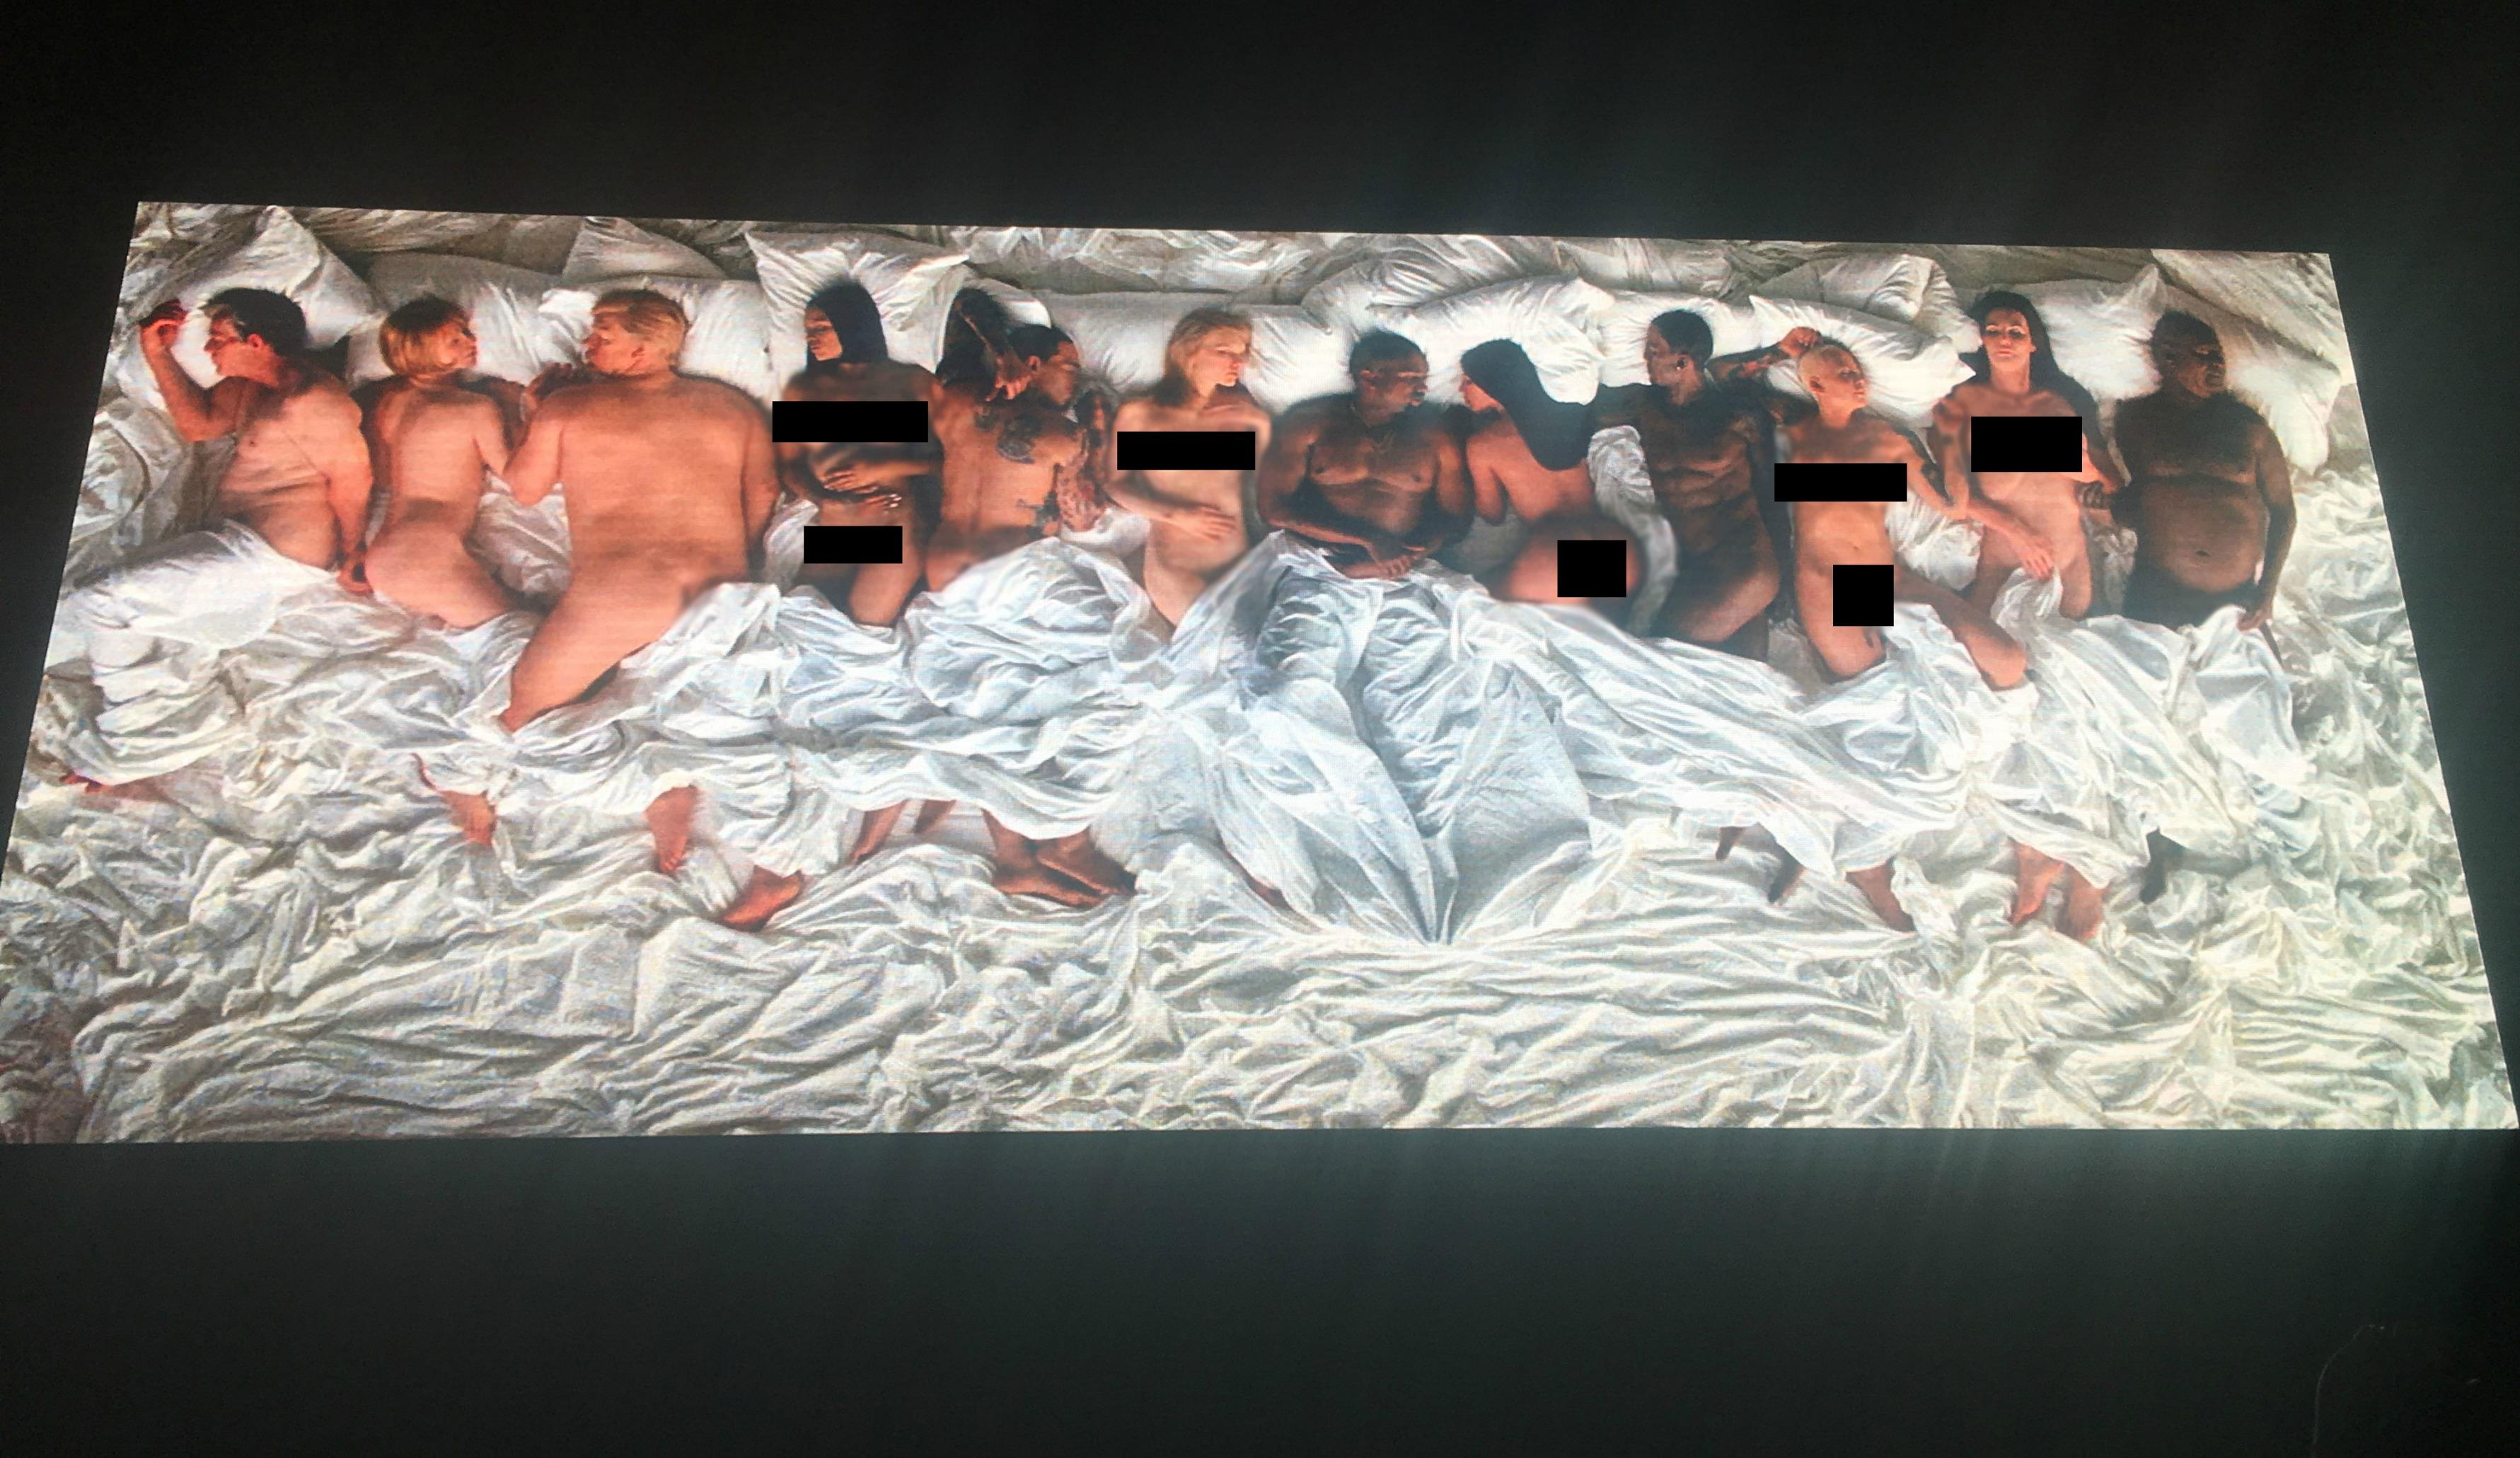 Taylor Swift and Donald Trump appear naked in Kanye Wests